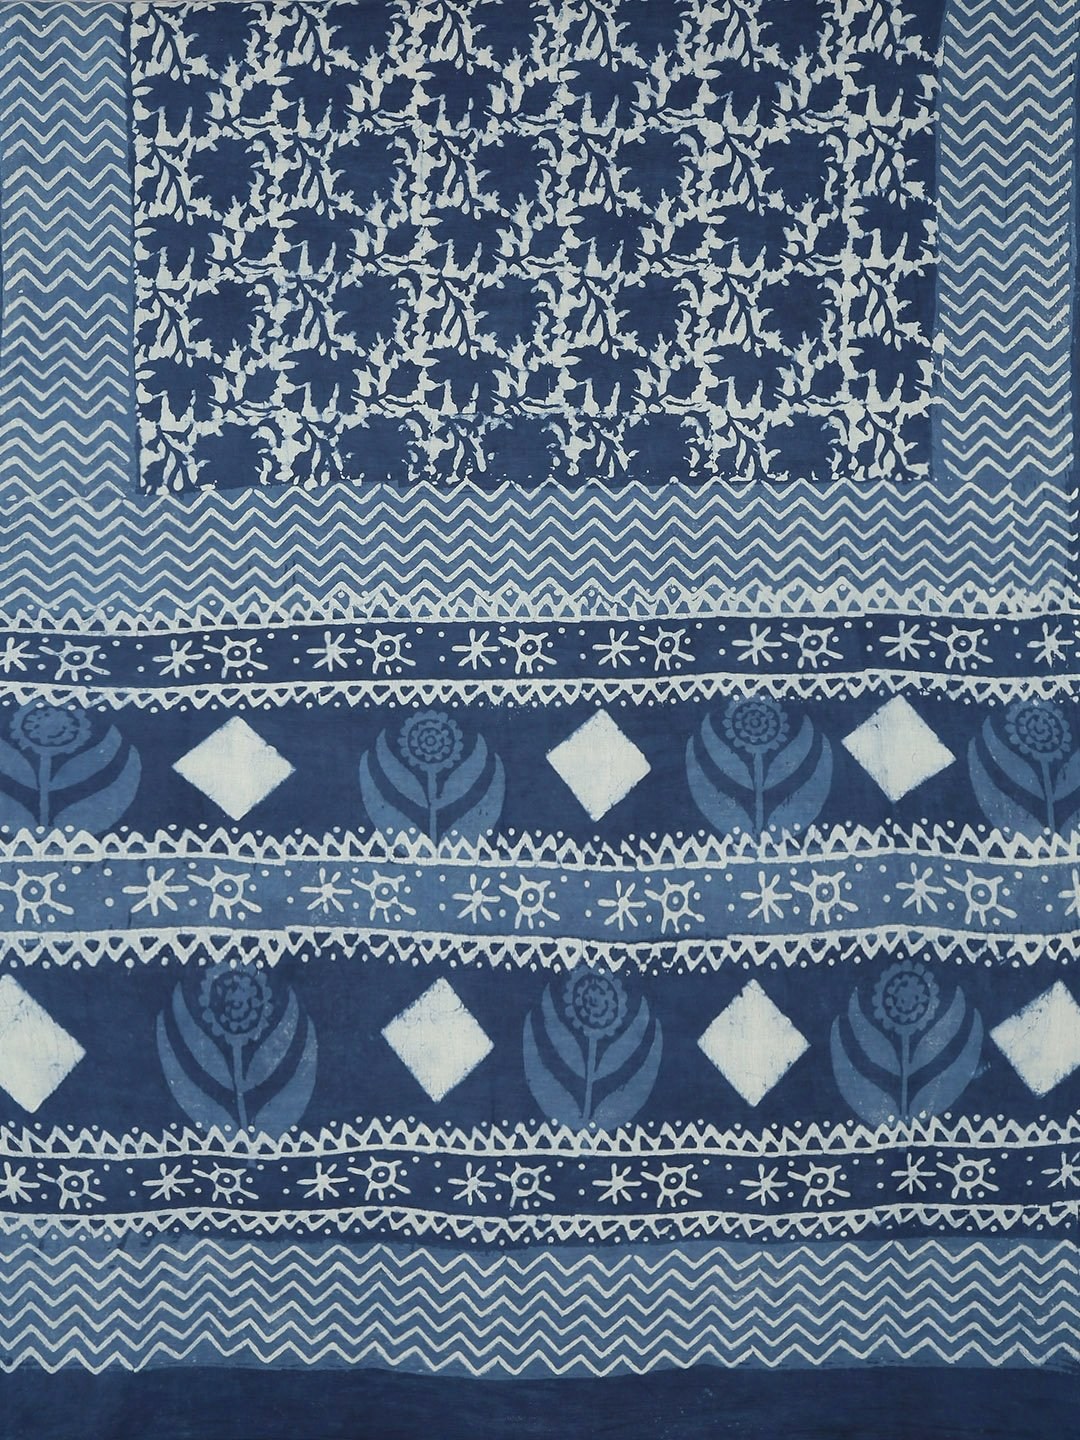 Navy Blue & White Mud Resist Handblock Print Handcrafted Cotton Saree-Saree-Kalakari India-BHKPSA0041-Cotton, Dabu, Geographical Indication, Hand Blocks, Hand Crafted, Heritage Prints, Indigo, Natural Dyes, Sarees, Sustainable Fabrics-[Linen,Ethnic,wear,Fashionista,Handloom,Handicraft,Indigo,blockprint,block,print,Cotton,Chanderi,Blue, latest,classy,party,bollywood,trendy,summer,style,traditional,formal,elegant,unique,style,hand,block,print, dabu,booti,gift,present,glamorous,affordable,collectib